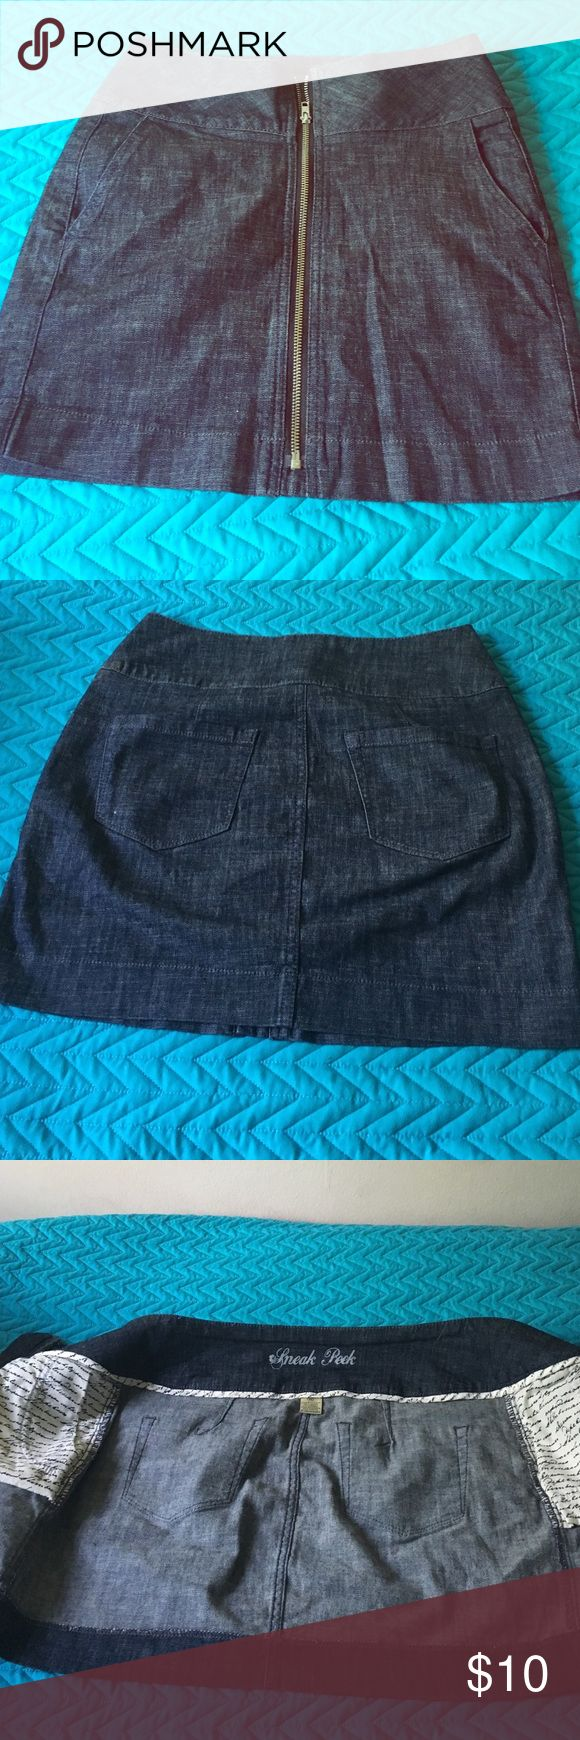 Short skirt with the zipper soft Jean material Short Jean skirt with the zipper on the front with two pocket!in very good condition Skirts Mini